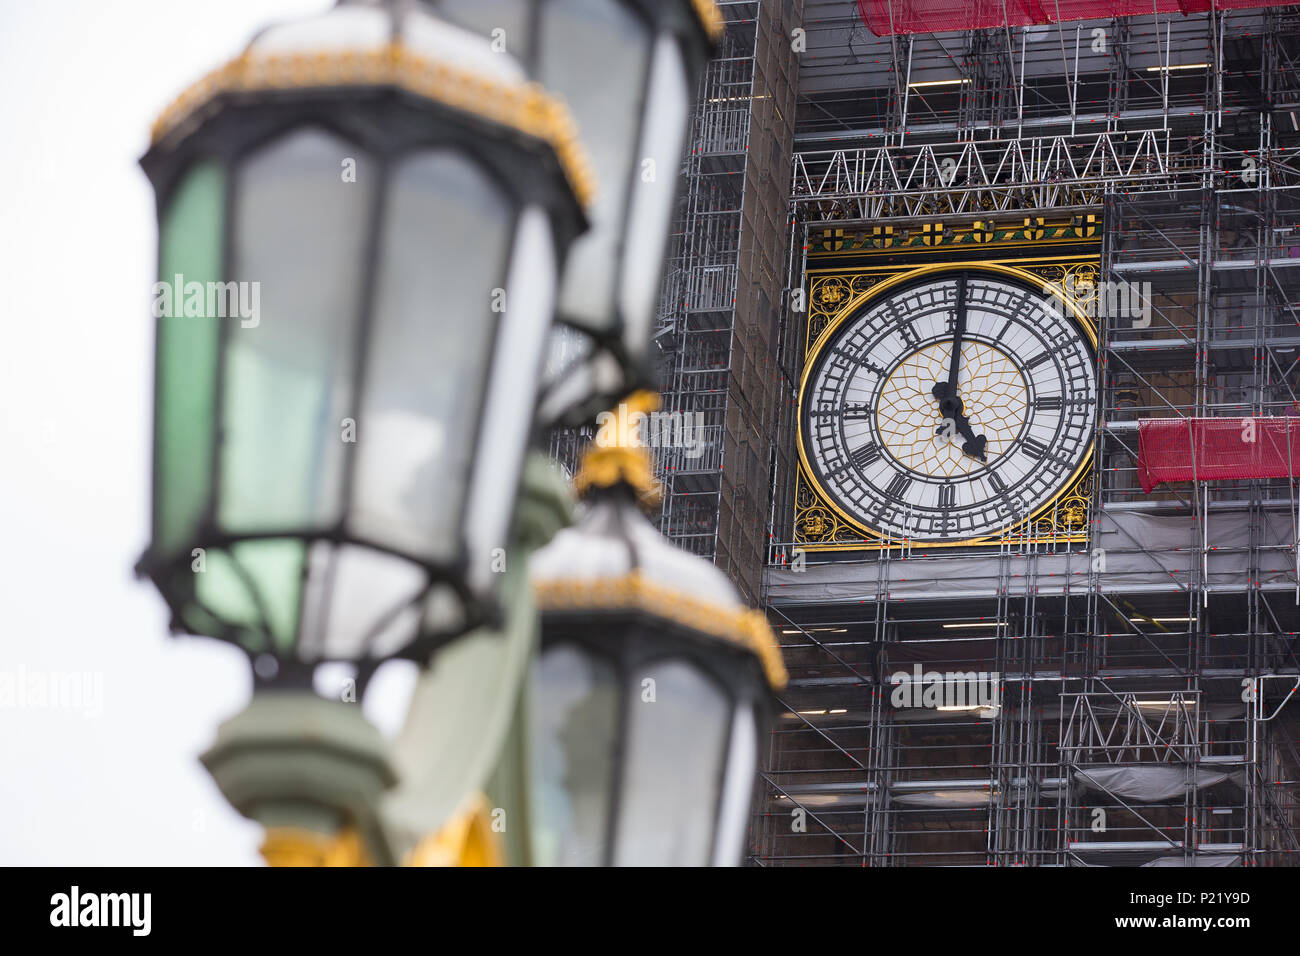 Scaffolding surrounds the clock face of Big Ben Elizabeth Tower Palace of Westminster Houses of Parliament during restorations renovations repairs and Stock Photo